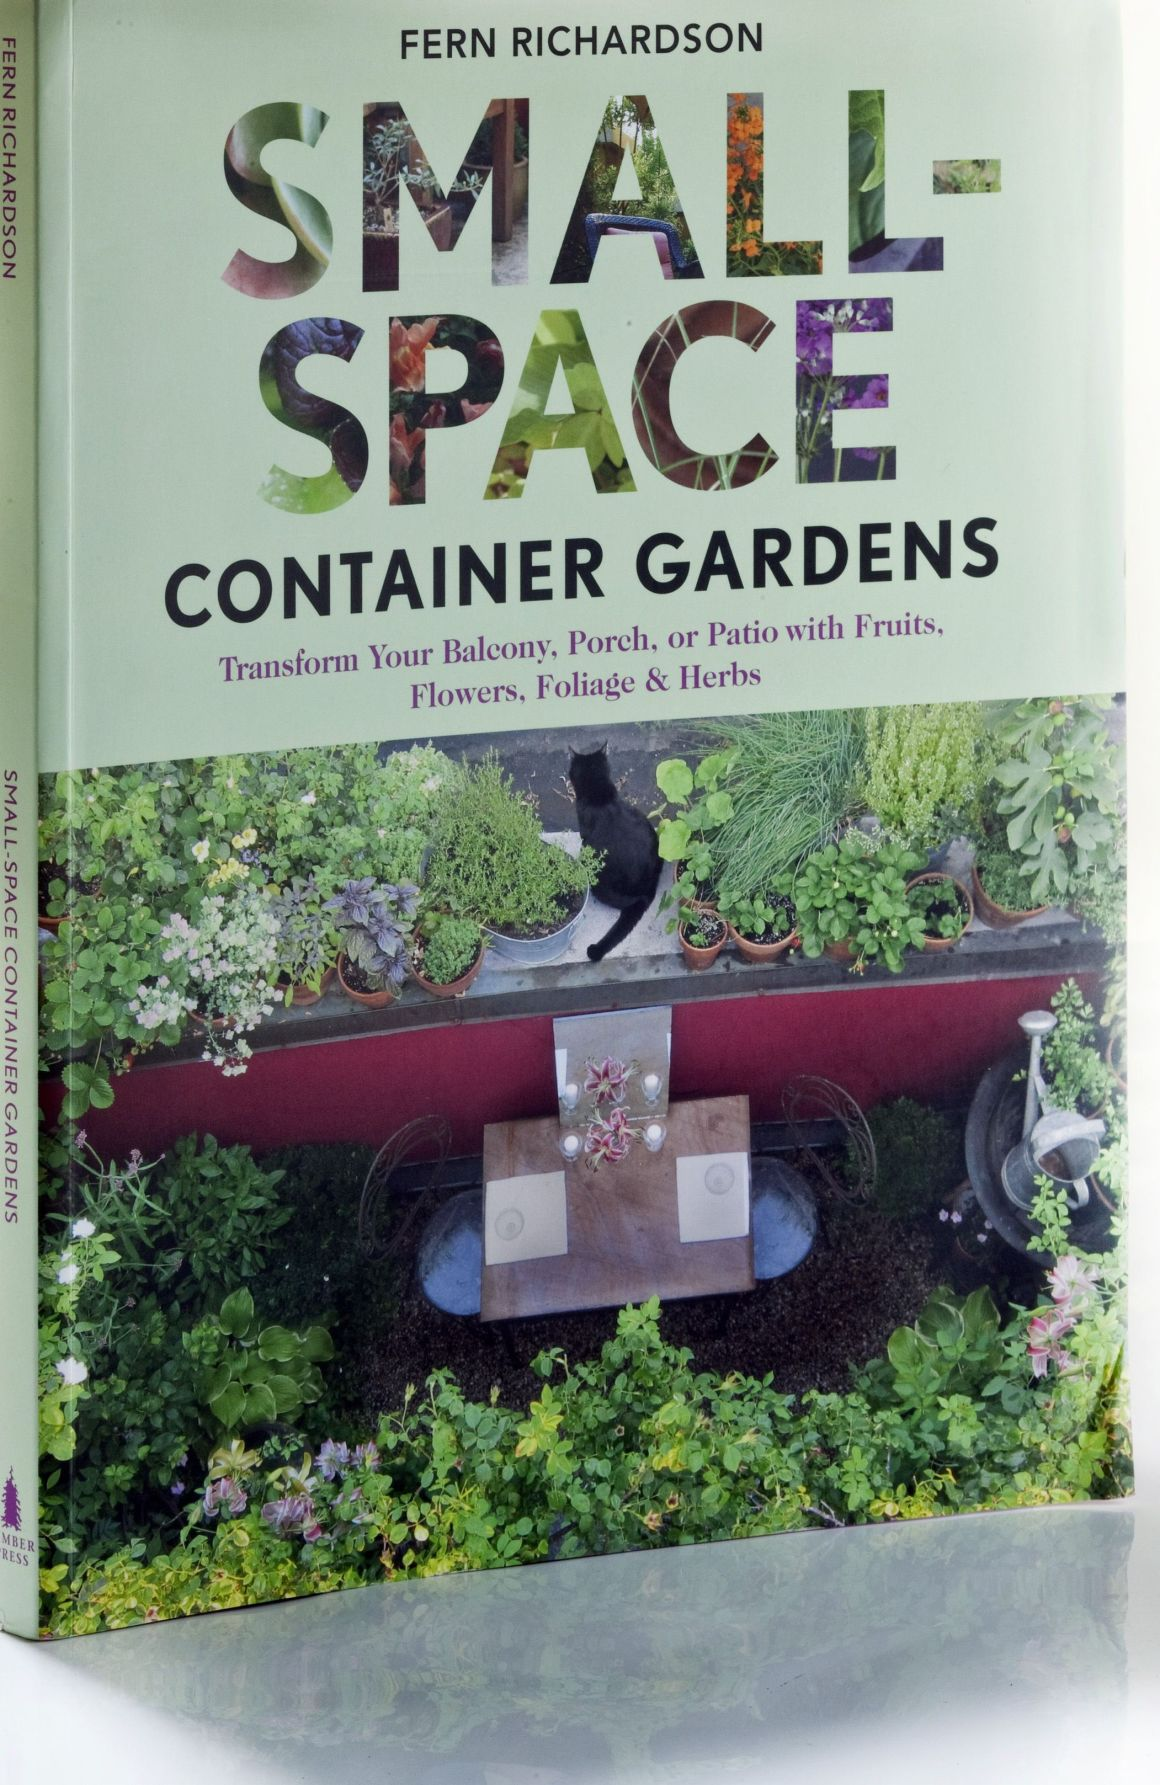 Container gardens can look polished and well-planned